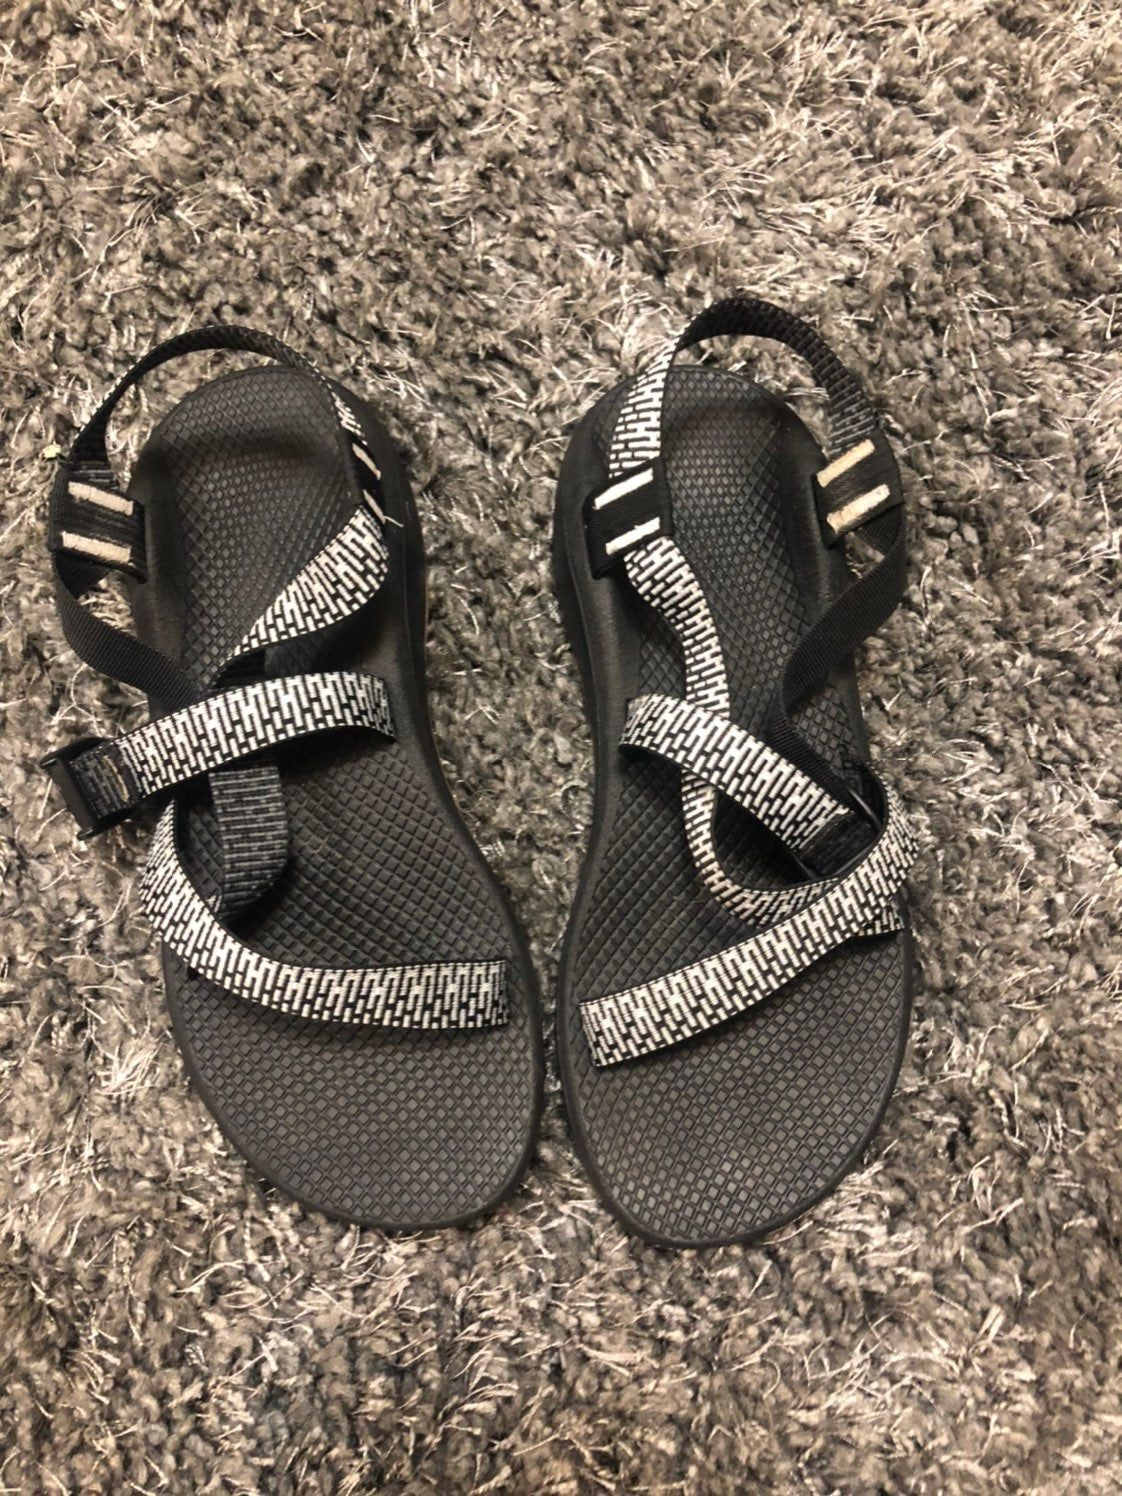 Chaco cloud Size 10 wide Barely worn